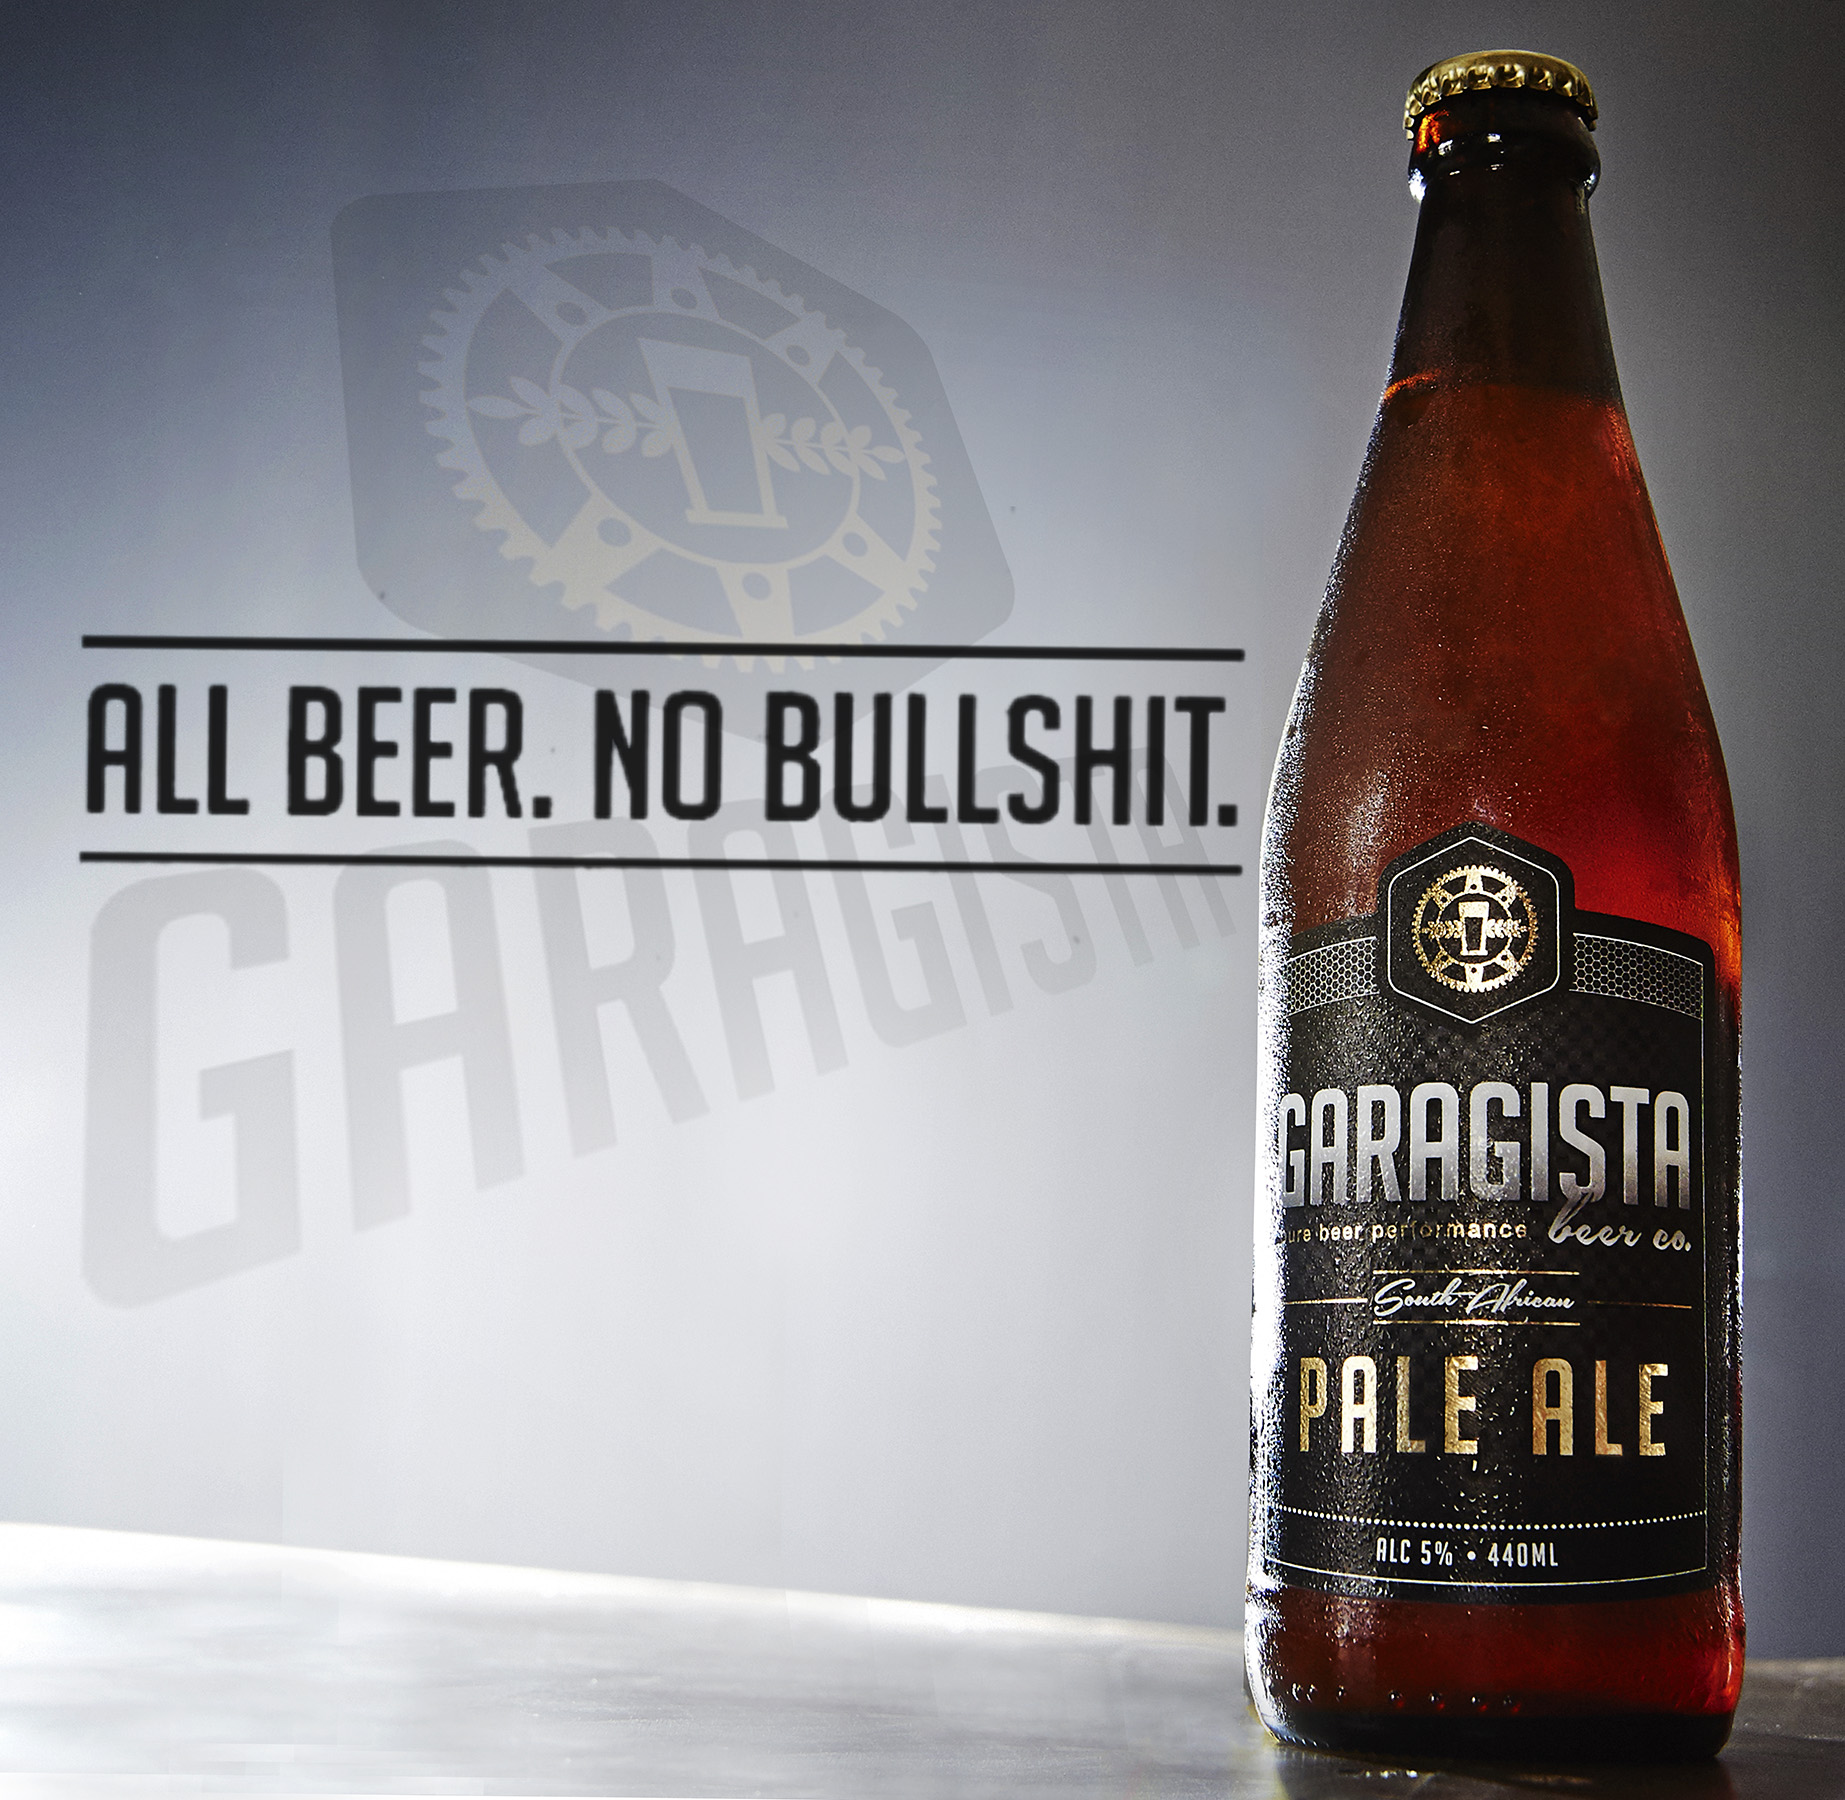 Garagista beer Co.